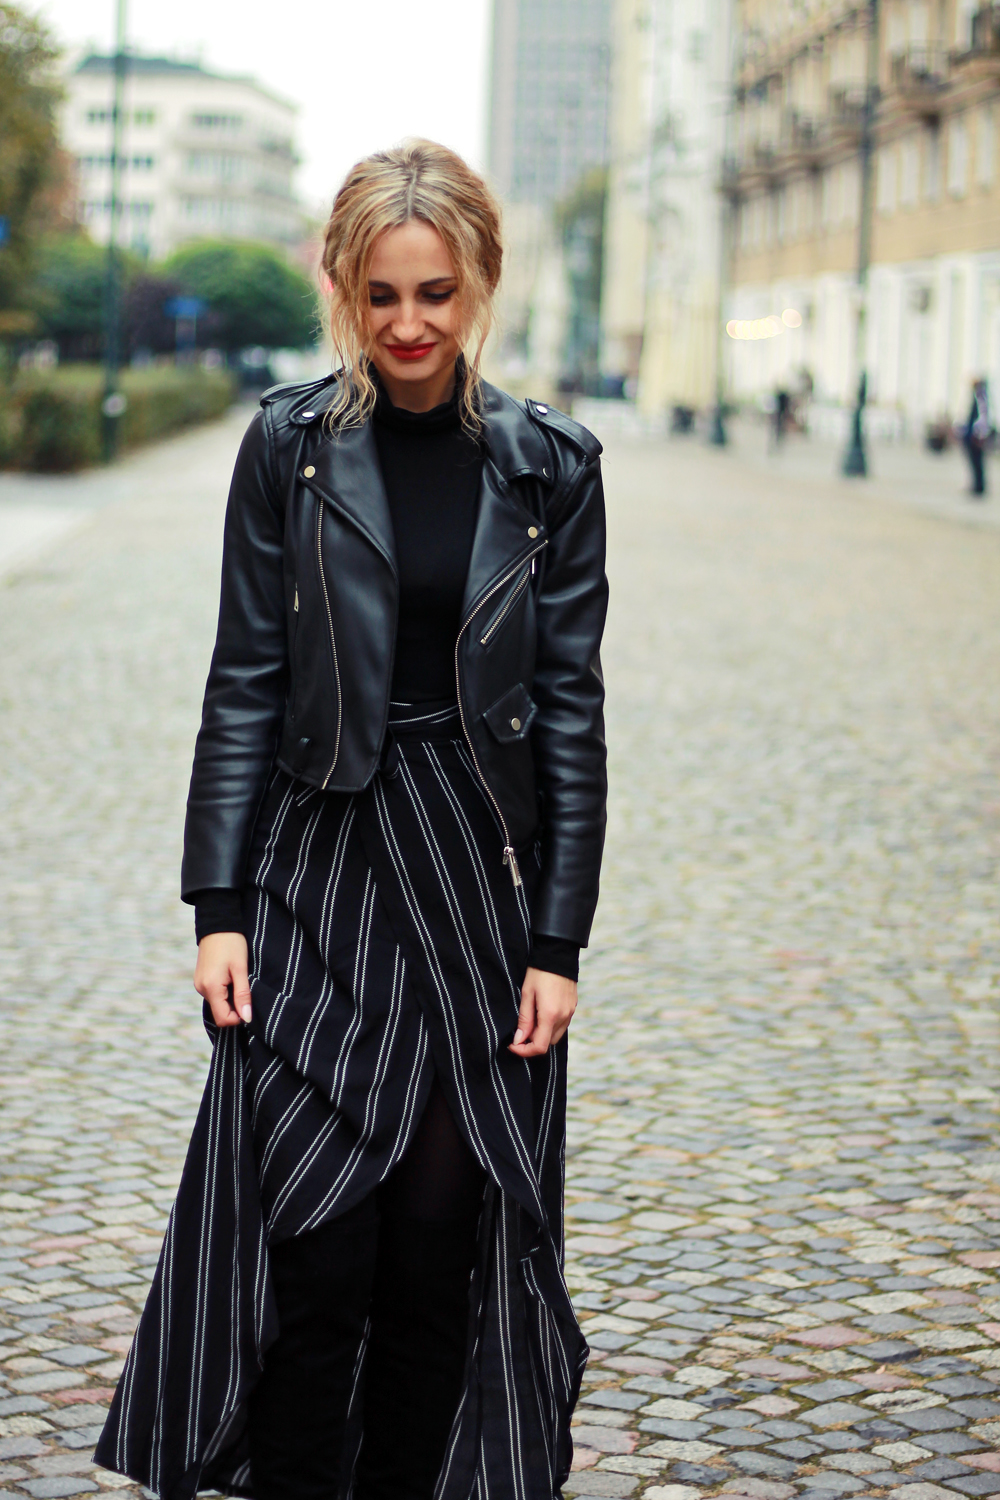 black-outfit-clothes-street-style-tumblr-girl-look-lookbook-fashion-ootd-what-to-wear-autumn-vogue-curly-hair